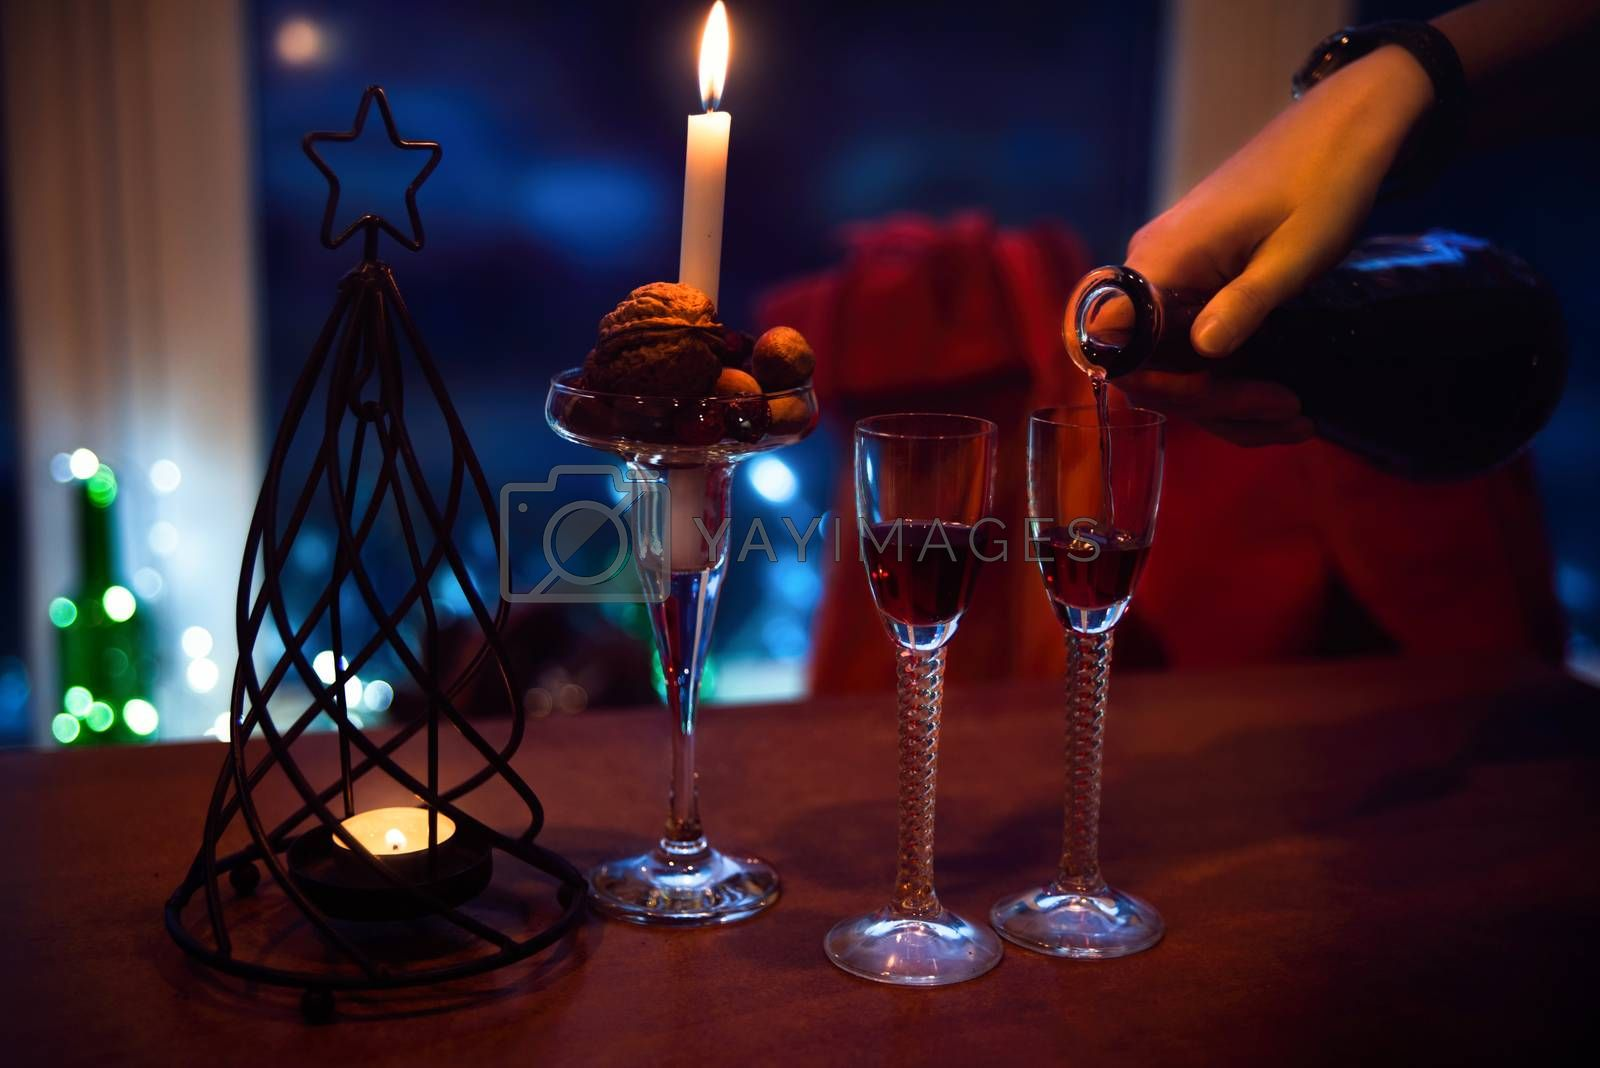 New year, new year atmosphere, romance celebration